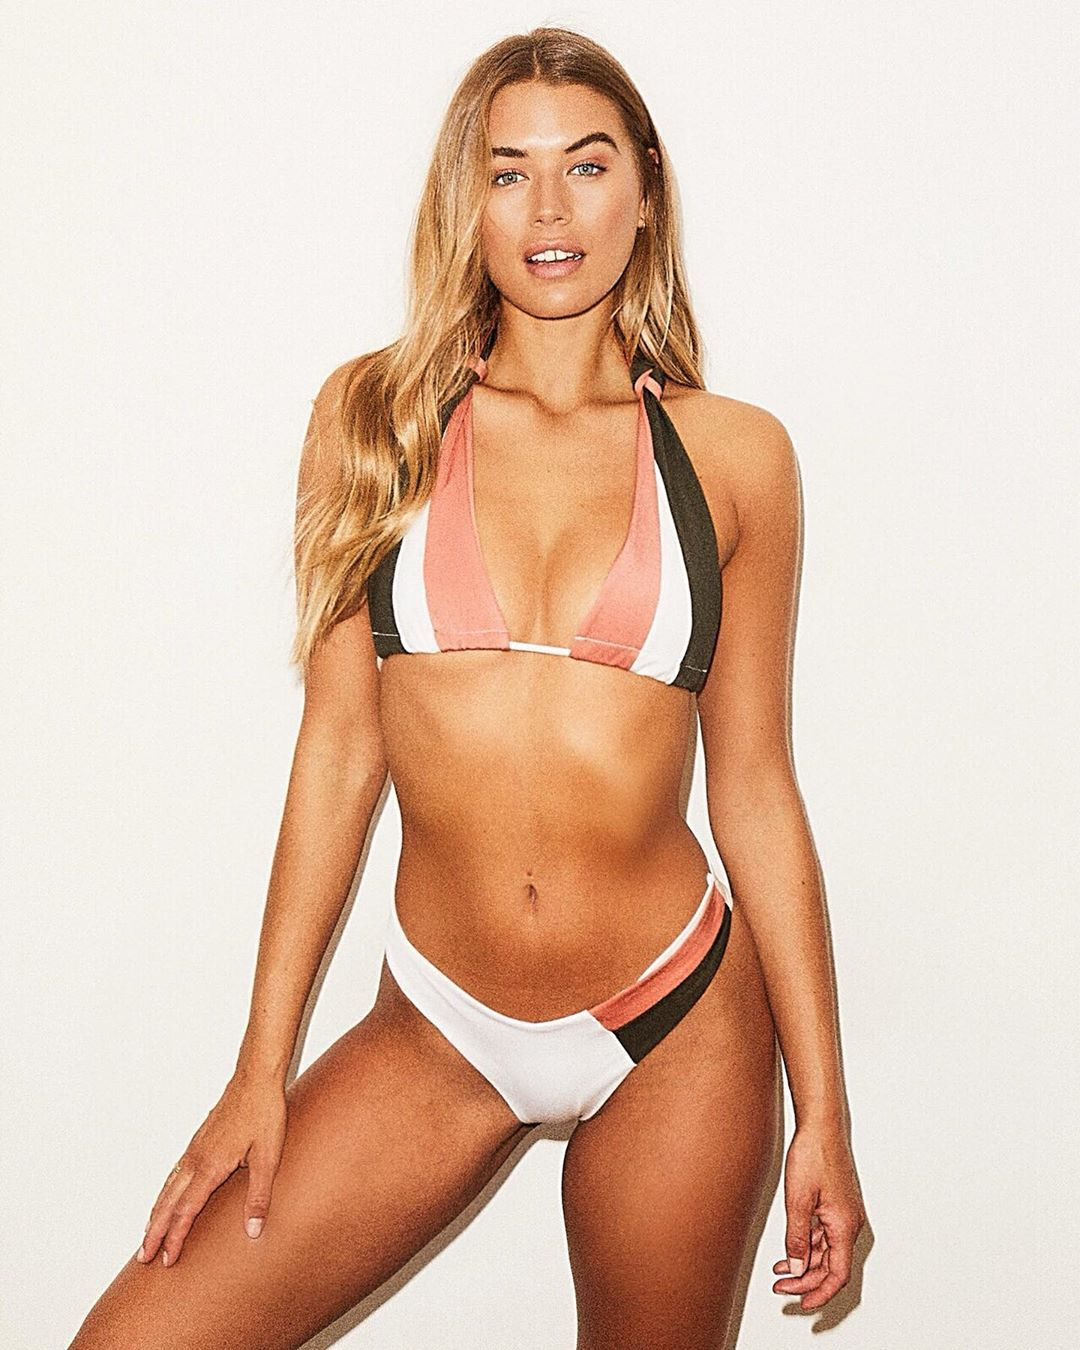 Image may contain: Arabella Love Island, Arabella, Love Island, Arabella Chi, new girl, new arrival, villa, Instagram, age, Human, Person, Bikini, Swimwear, Clothing, Apparel